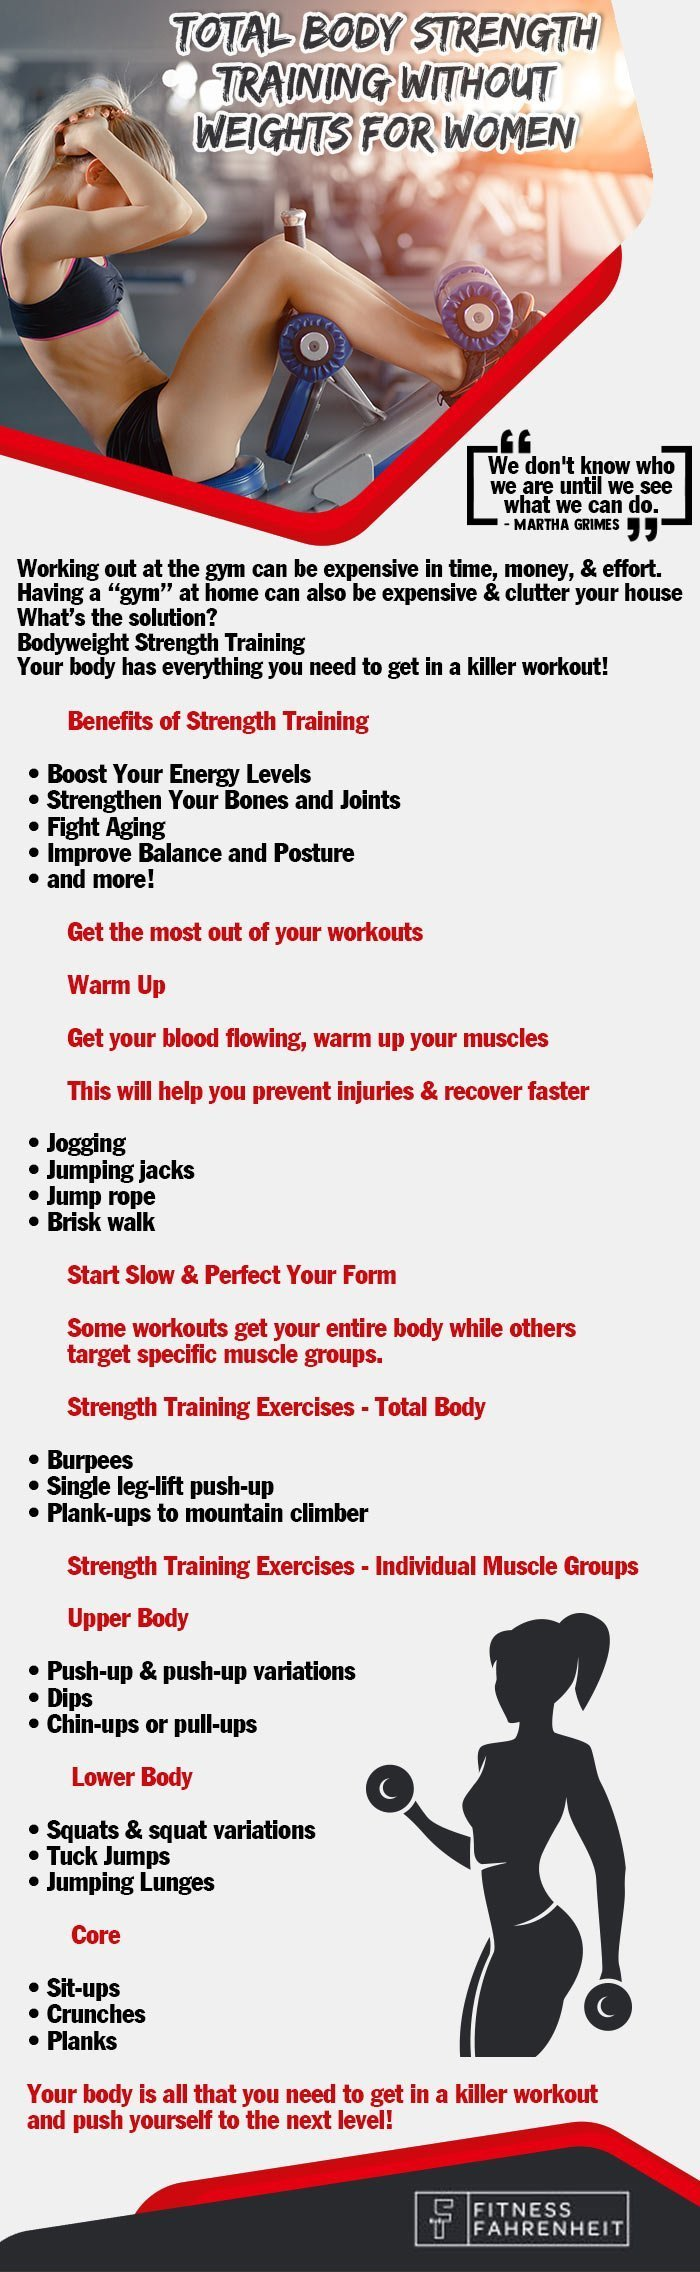 strength training for women at home tips displayed on an infographic.